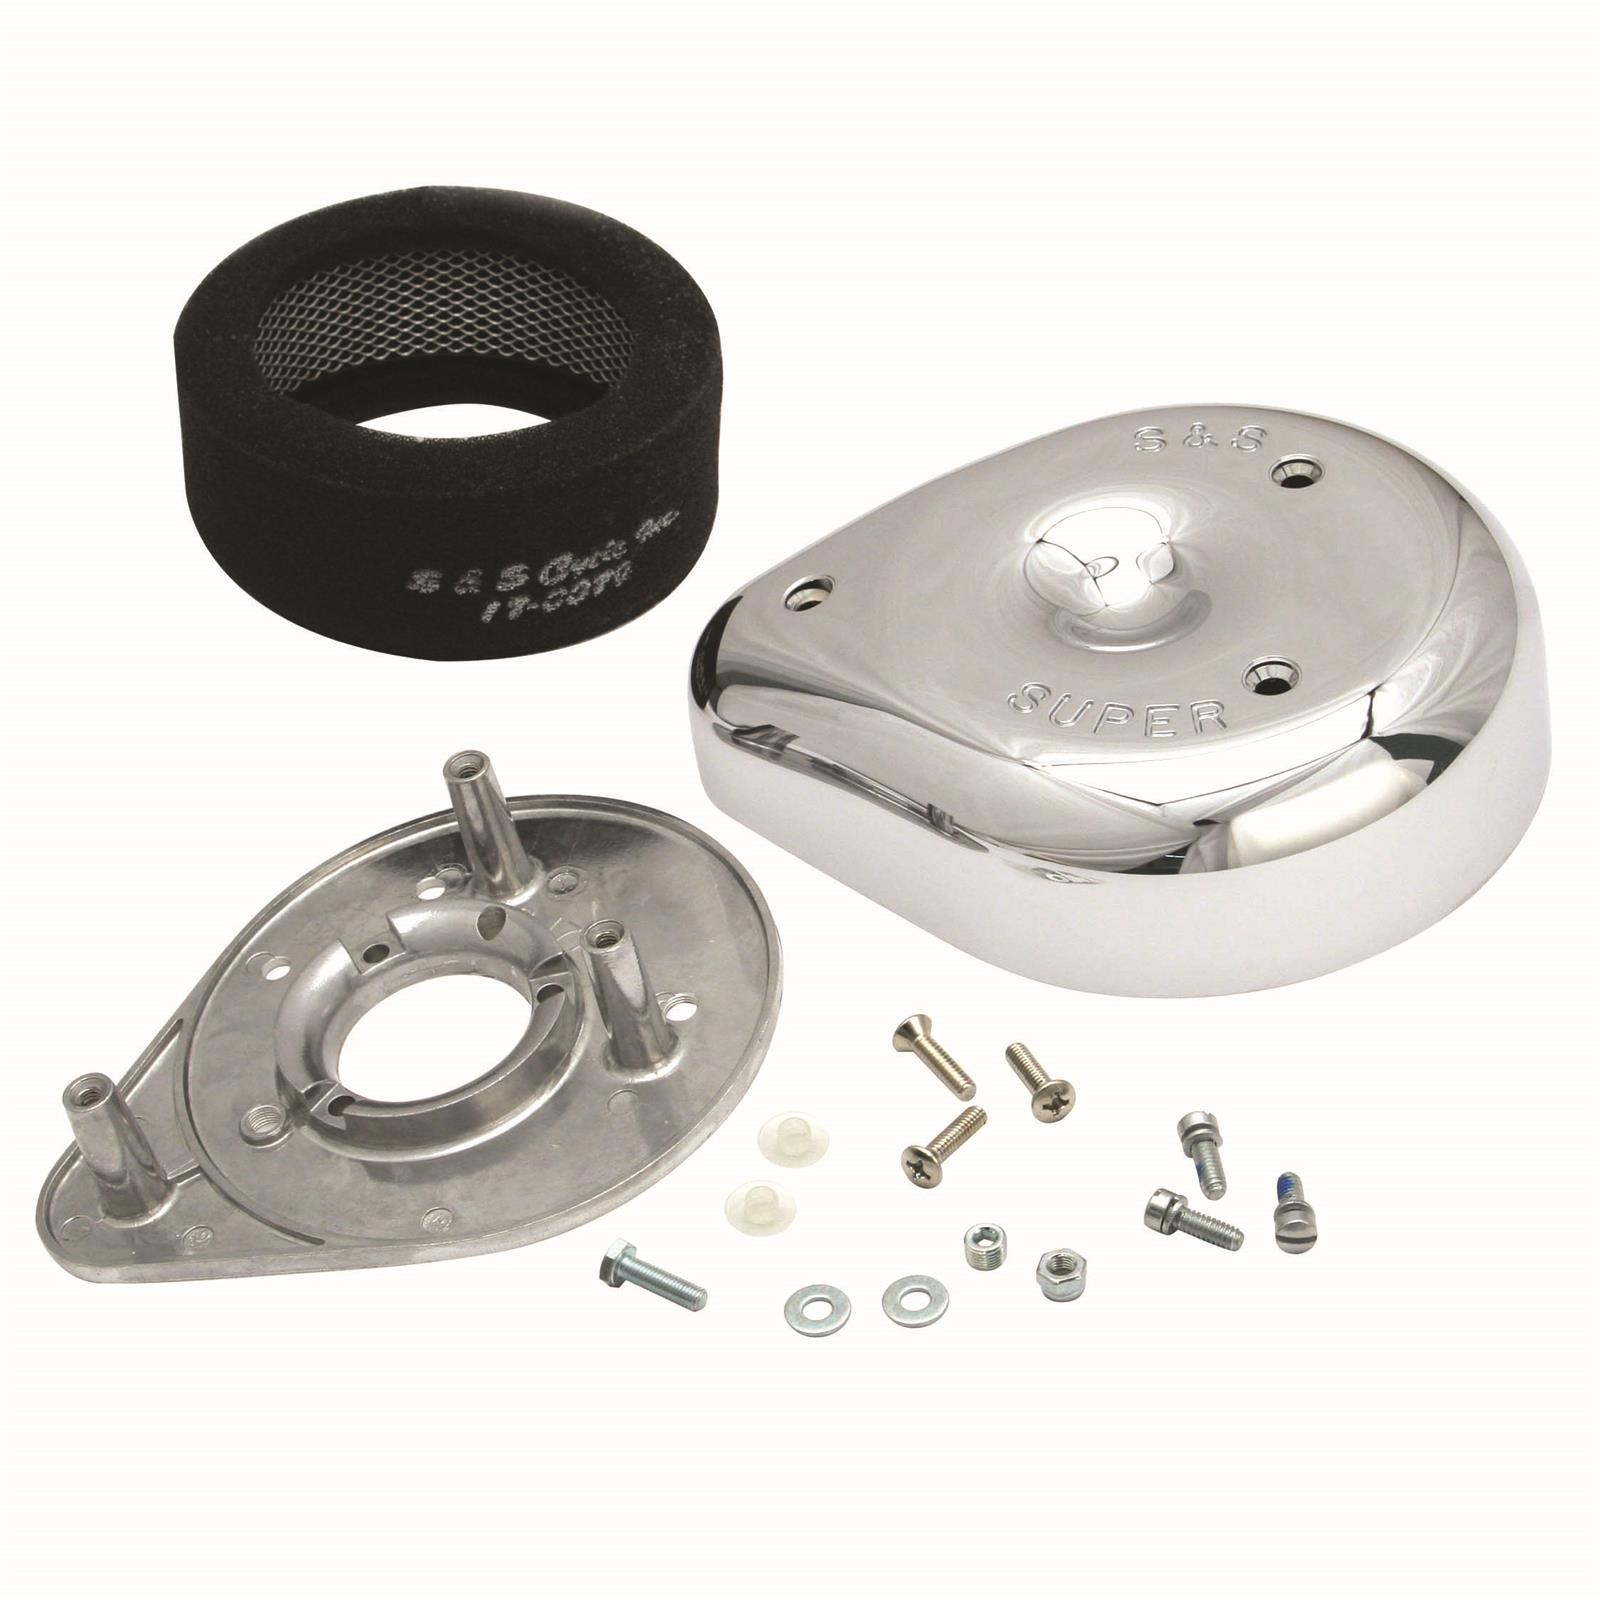 STOCK FUEL SYSTEM 17-0400 S AND S CYCLE AIR CLEANER KITS